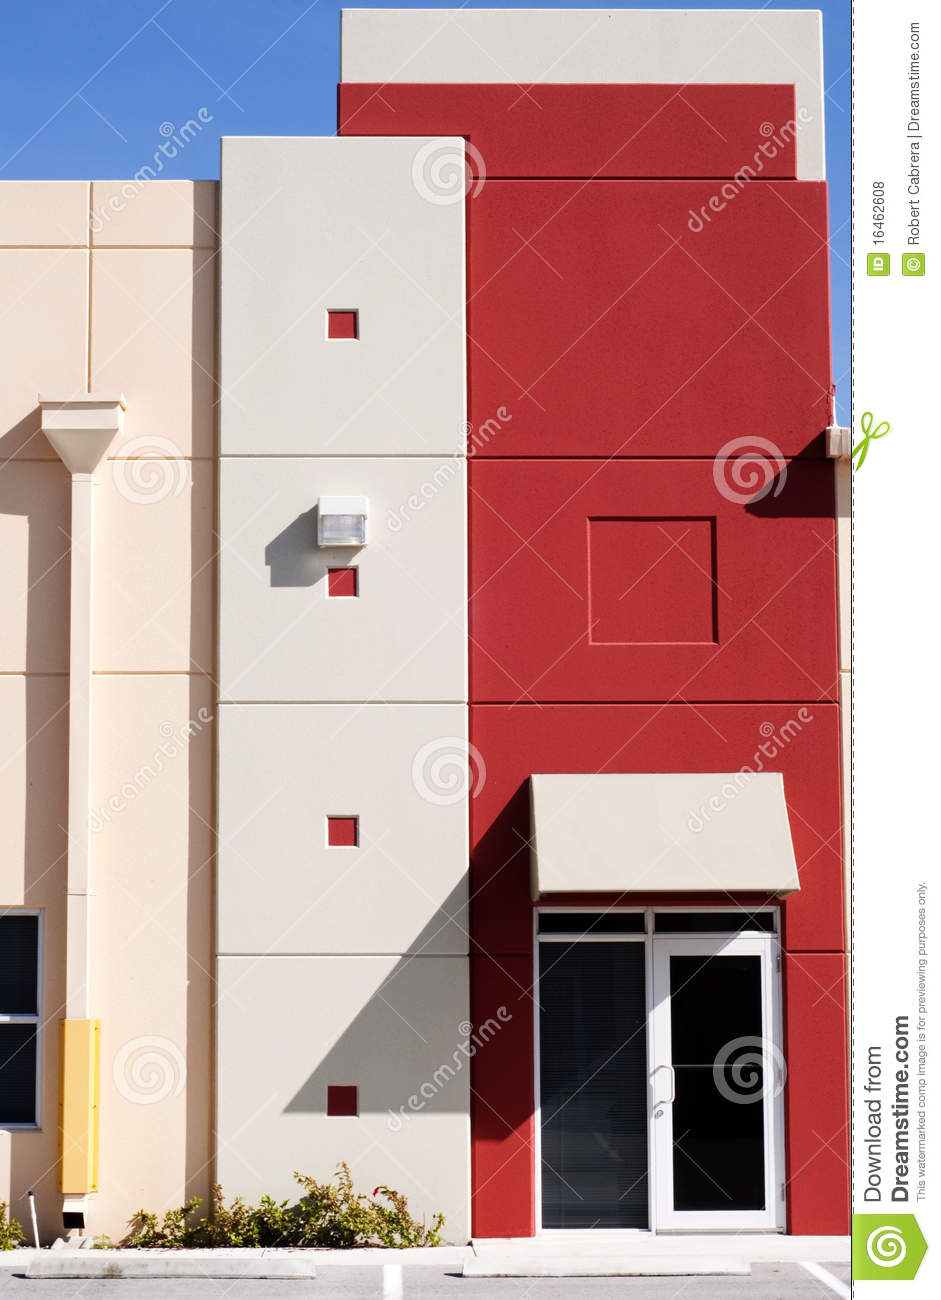 Modern Colorful Building exterior